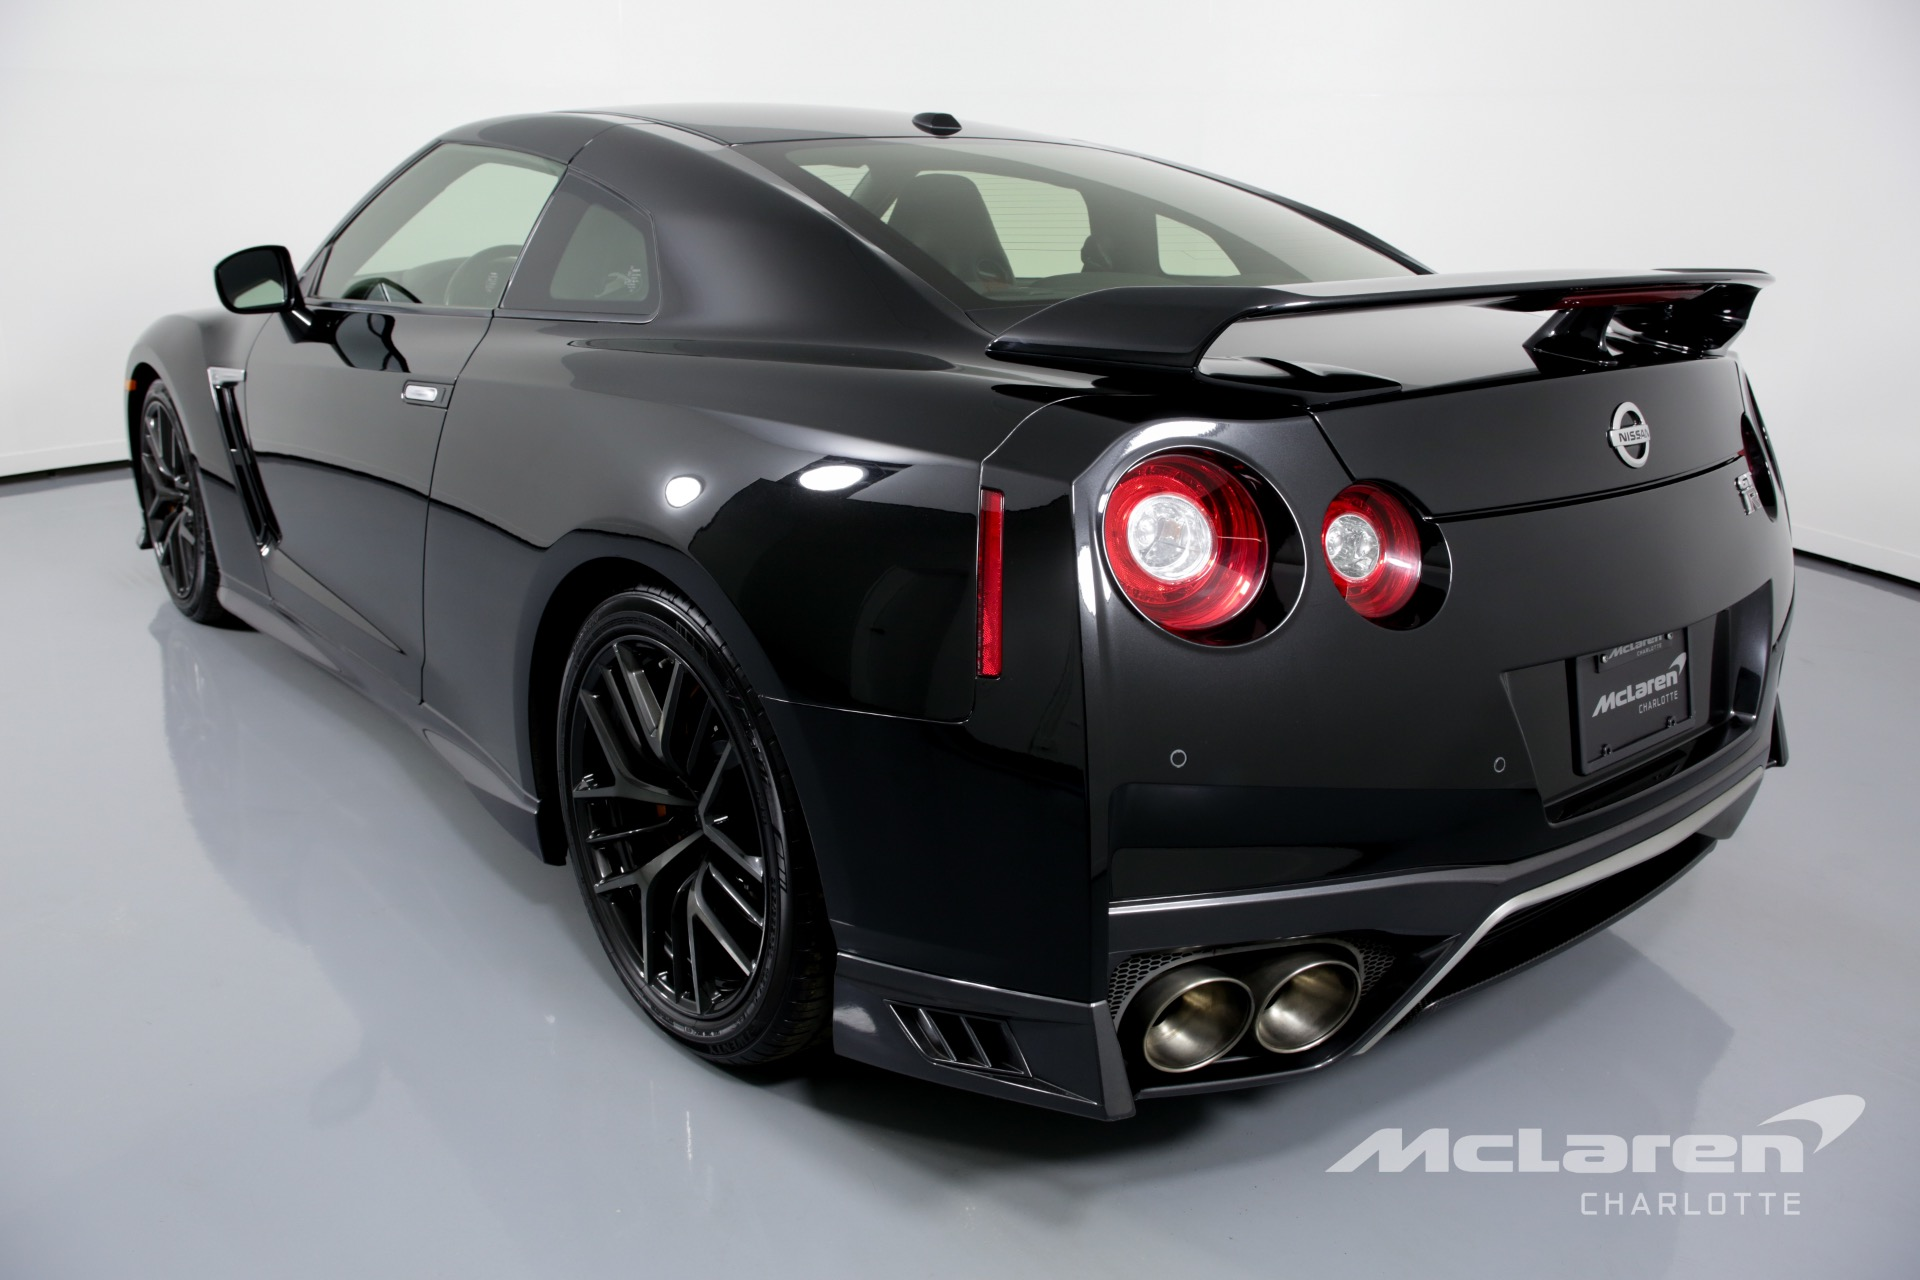 Used Nissan Gt-r for Sale Unique Used 2017 Nissan Gt R Premium for Sale $92 500